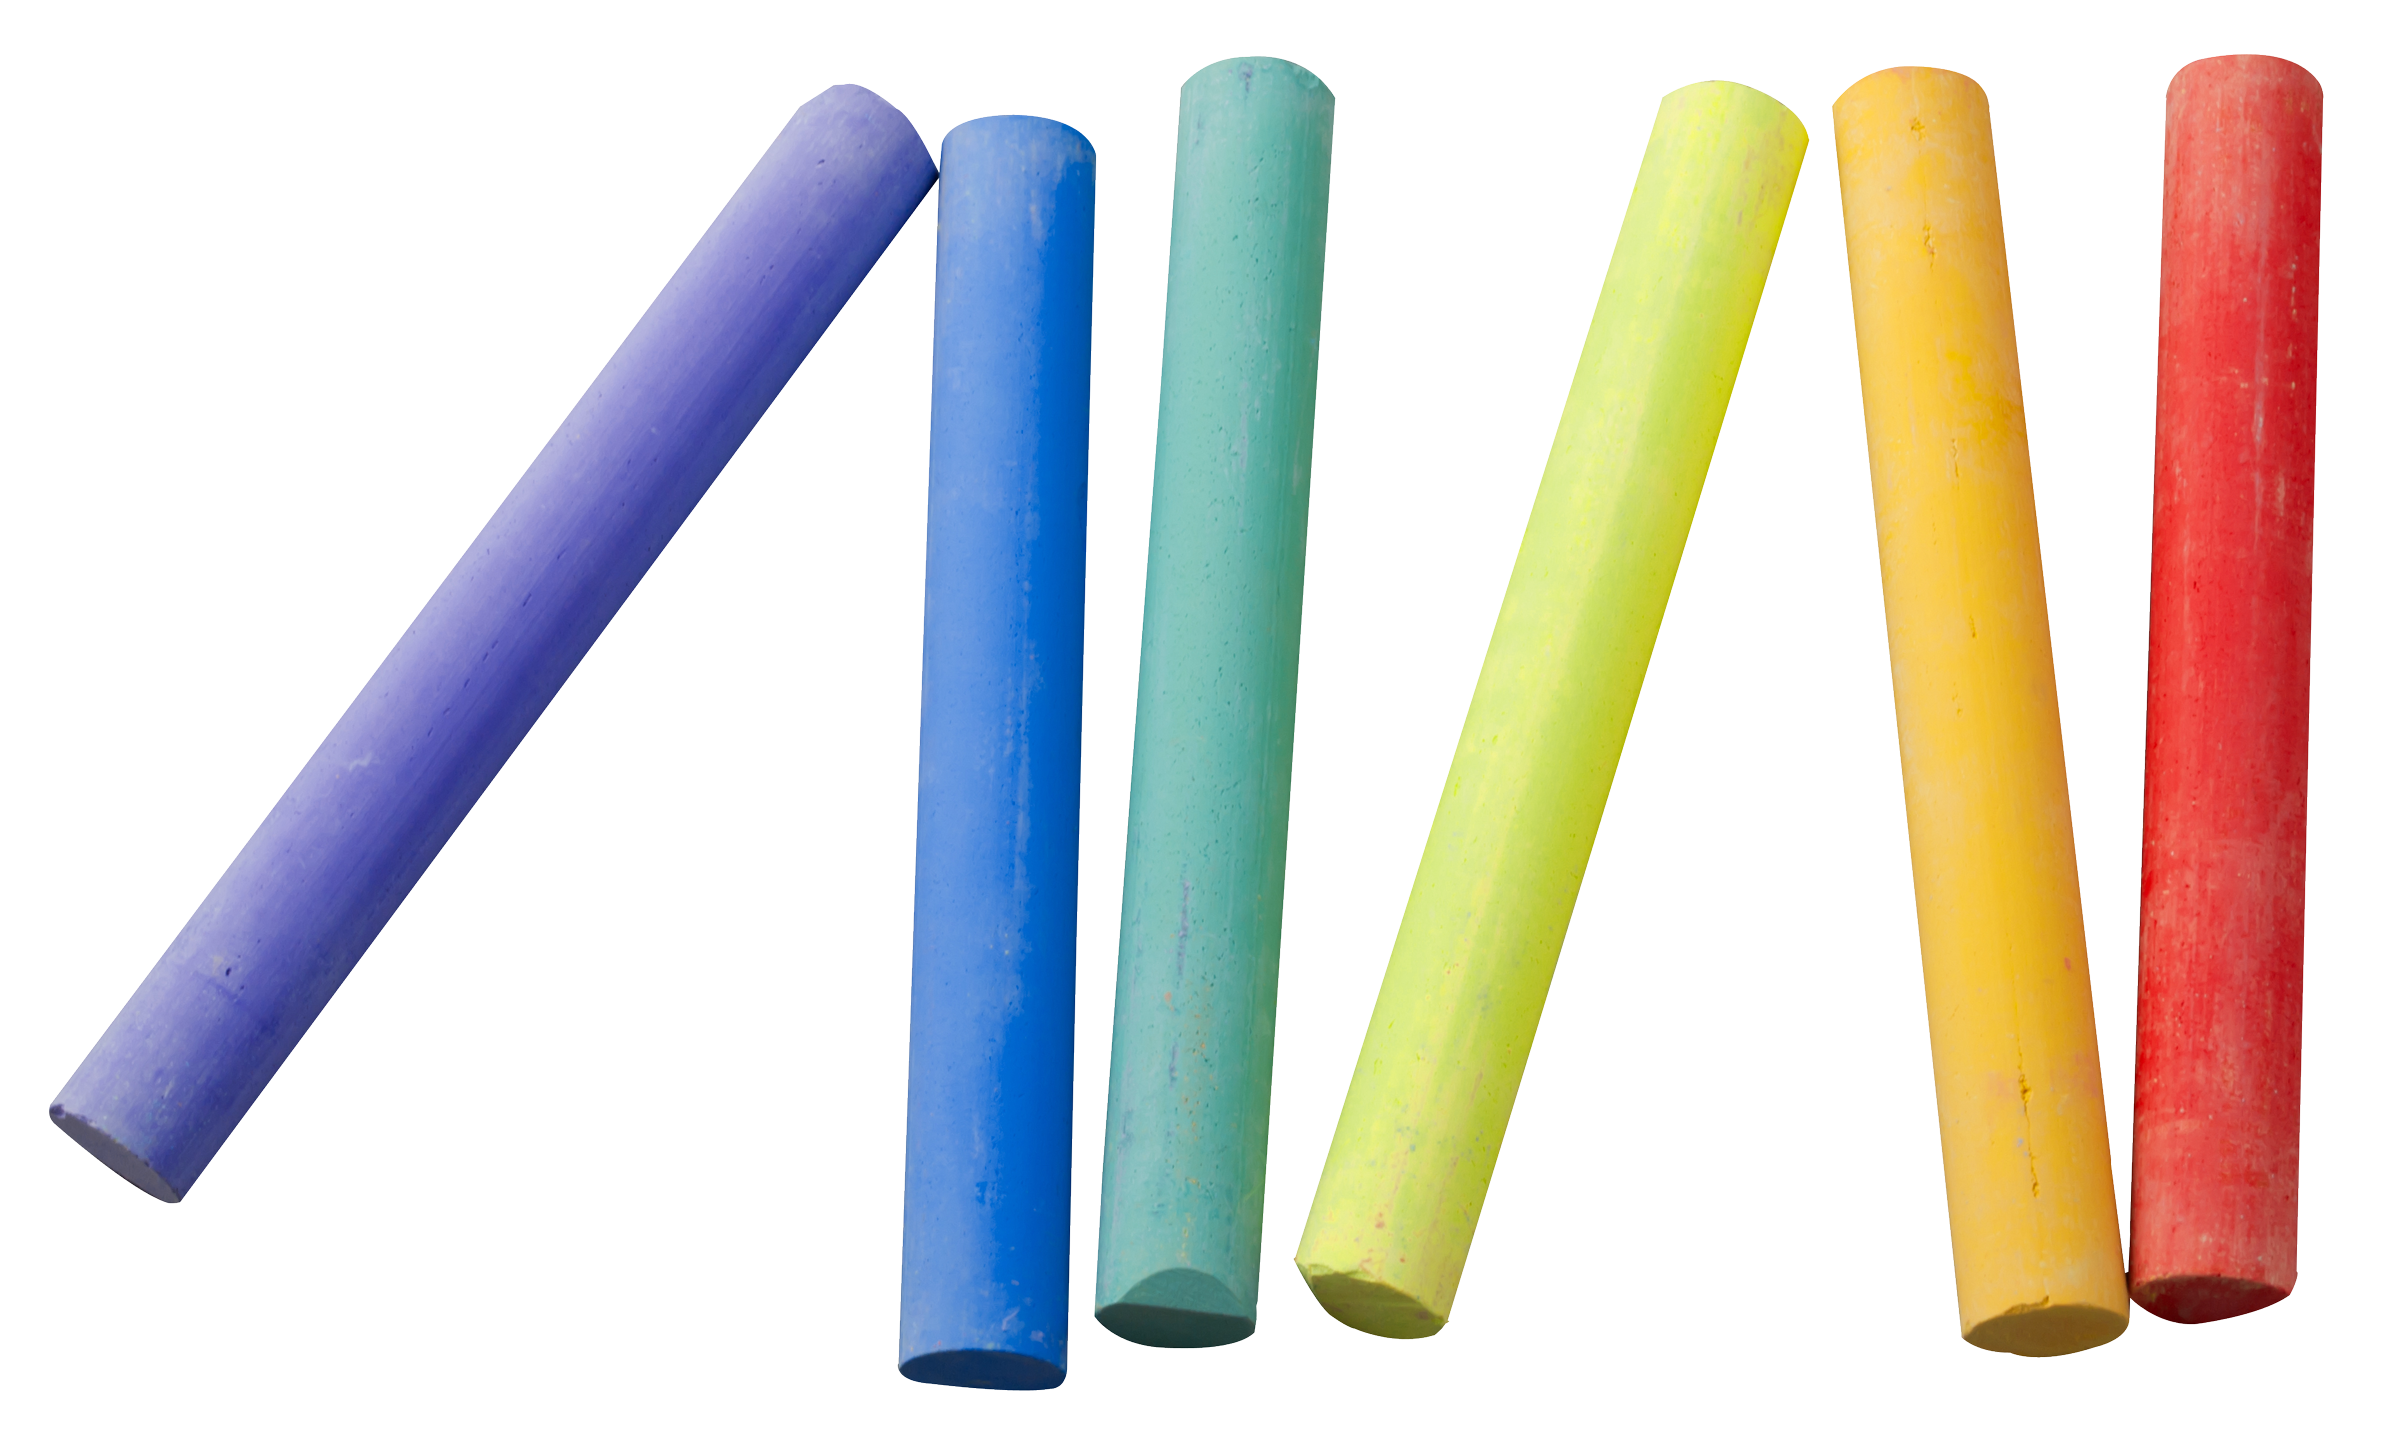 Chalk png. Icon web icons image